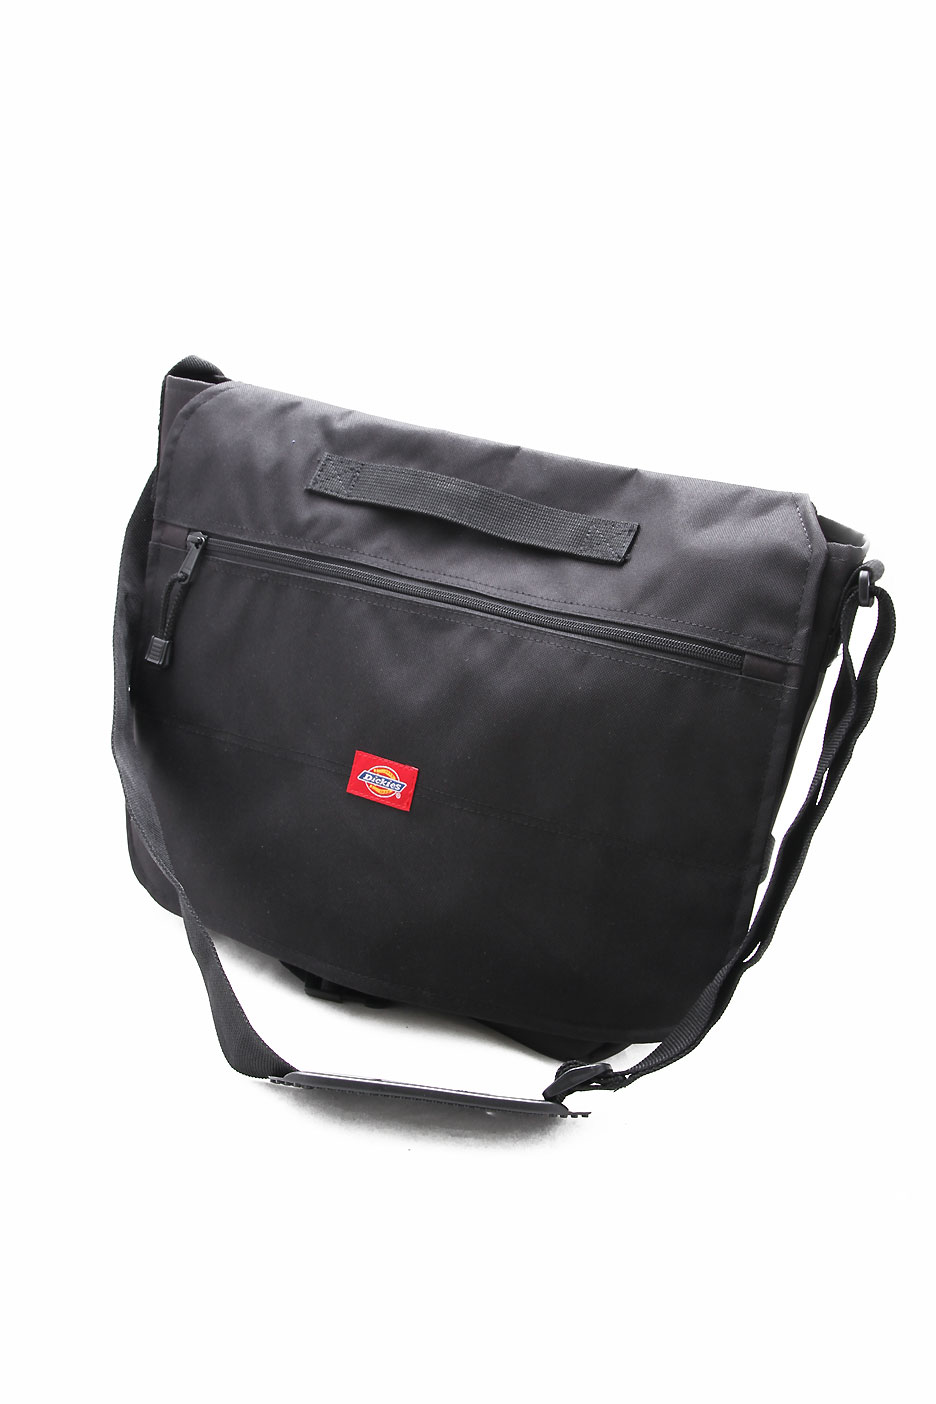 Dickies - 614 Messenger - Bag - Impericon.com UK